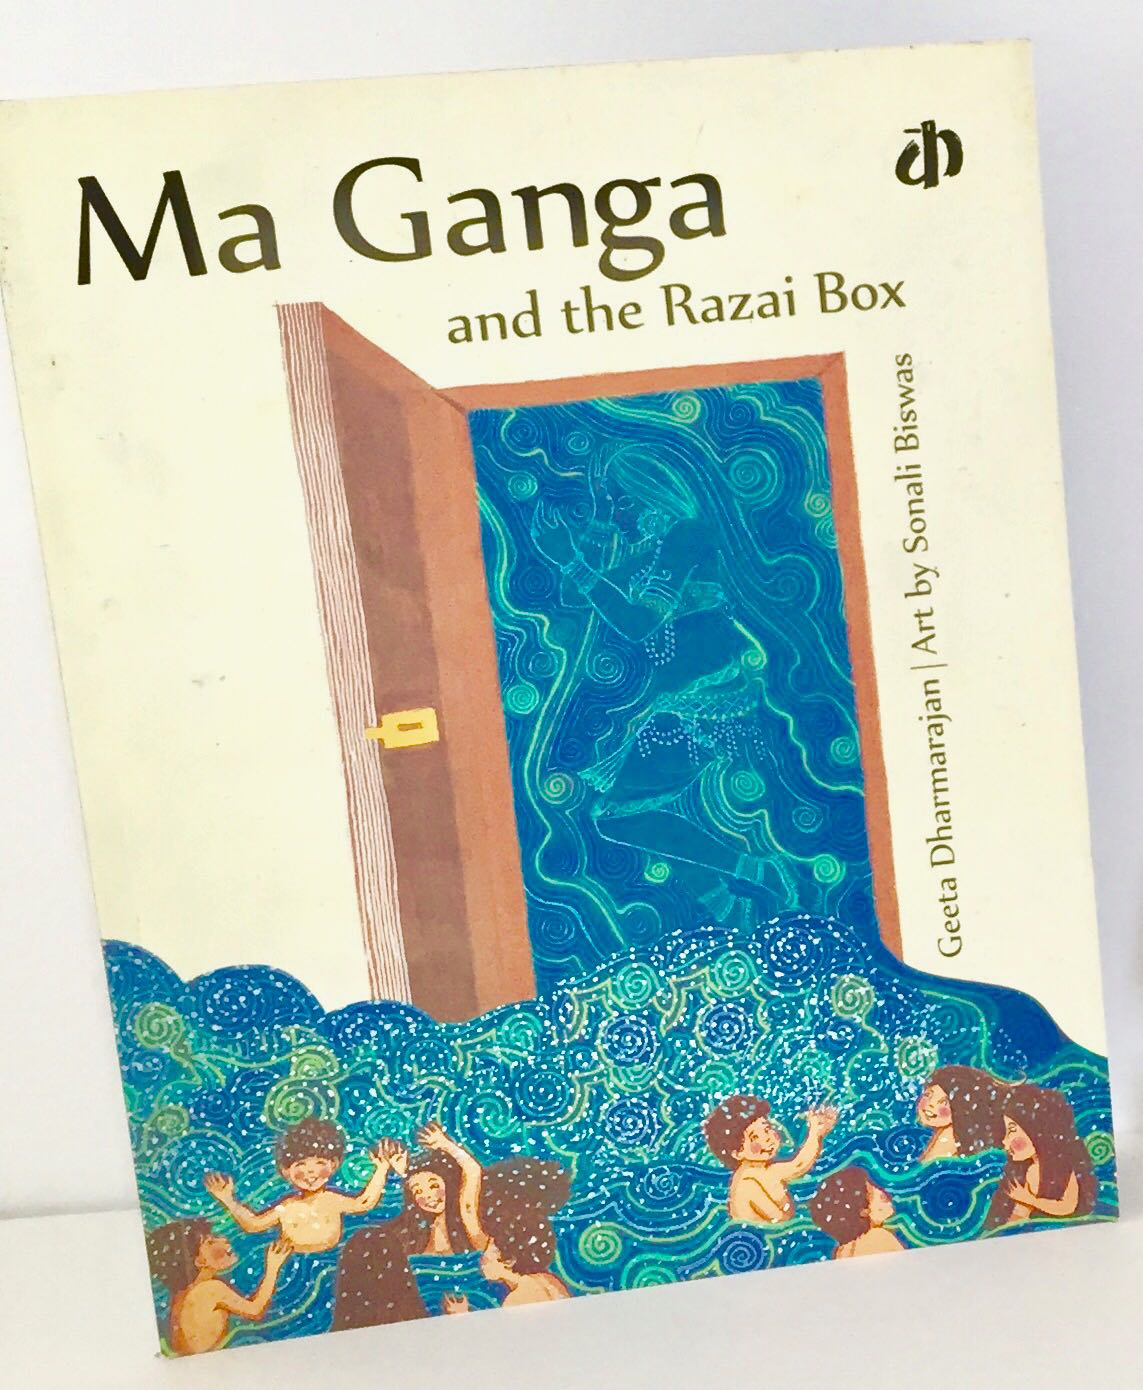 Maa Ganga and the Razai Box